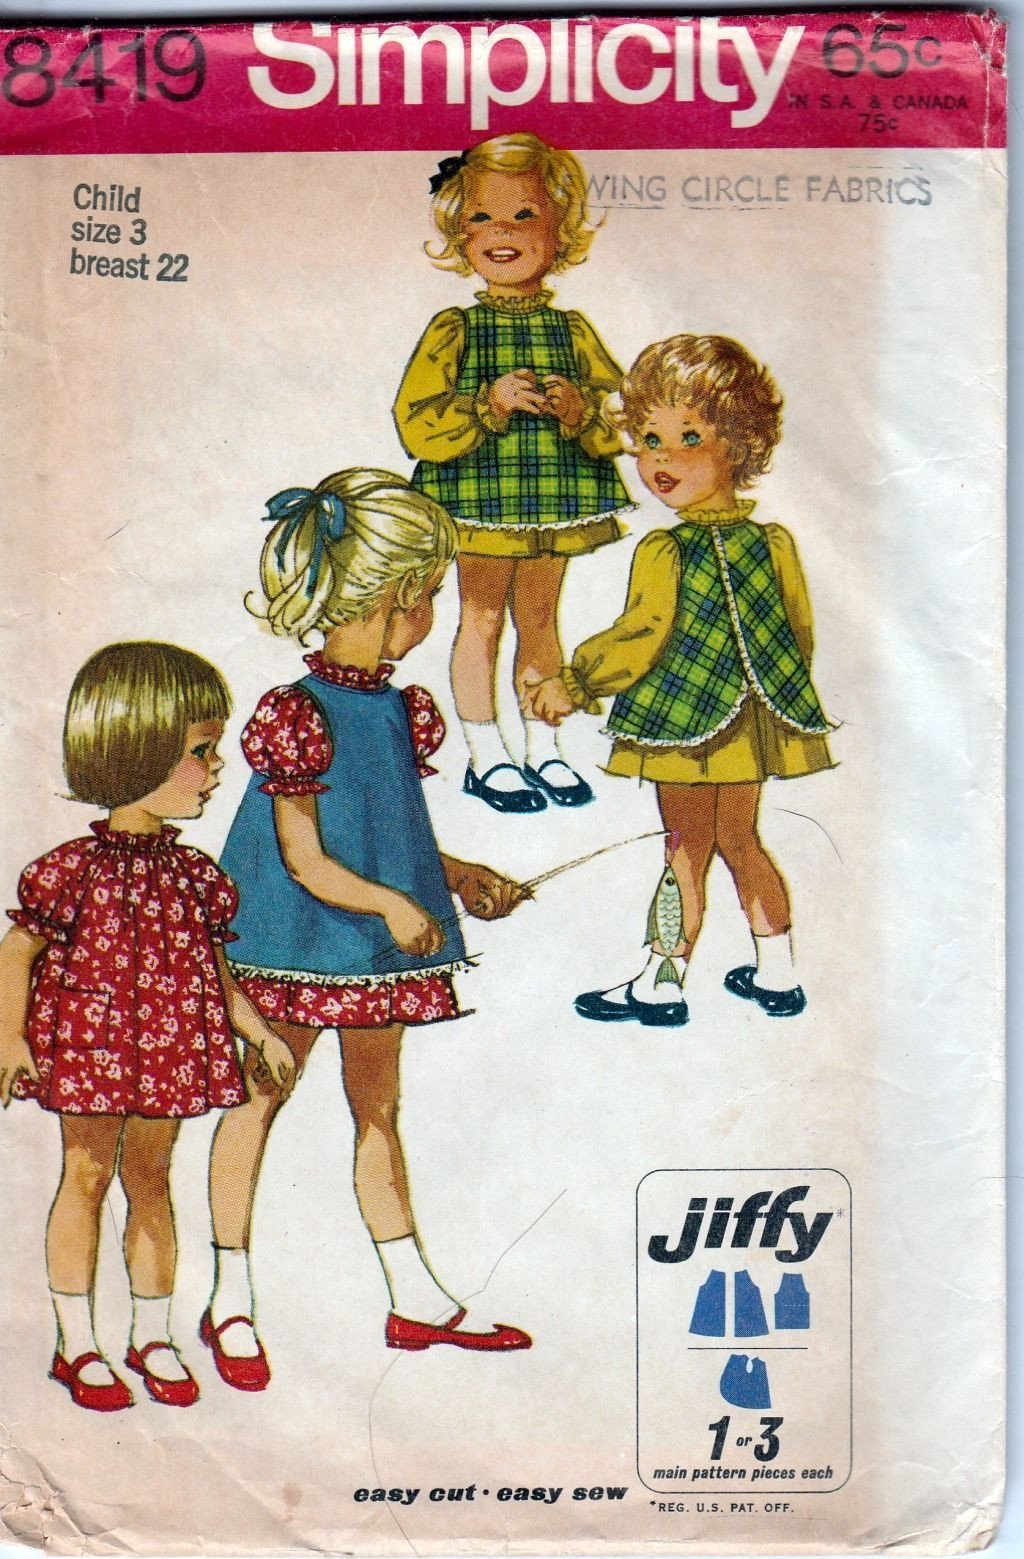 Simplicity 8419 Vintage 60's Sewing Pattern Little Girls Toddler Jewel Neck Dress Pinafore - VintageStitching - Vintage Sewing Patterns